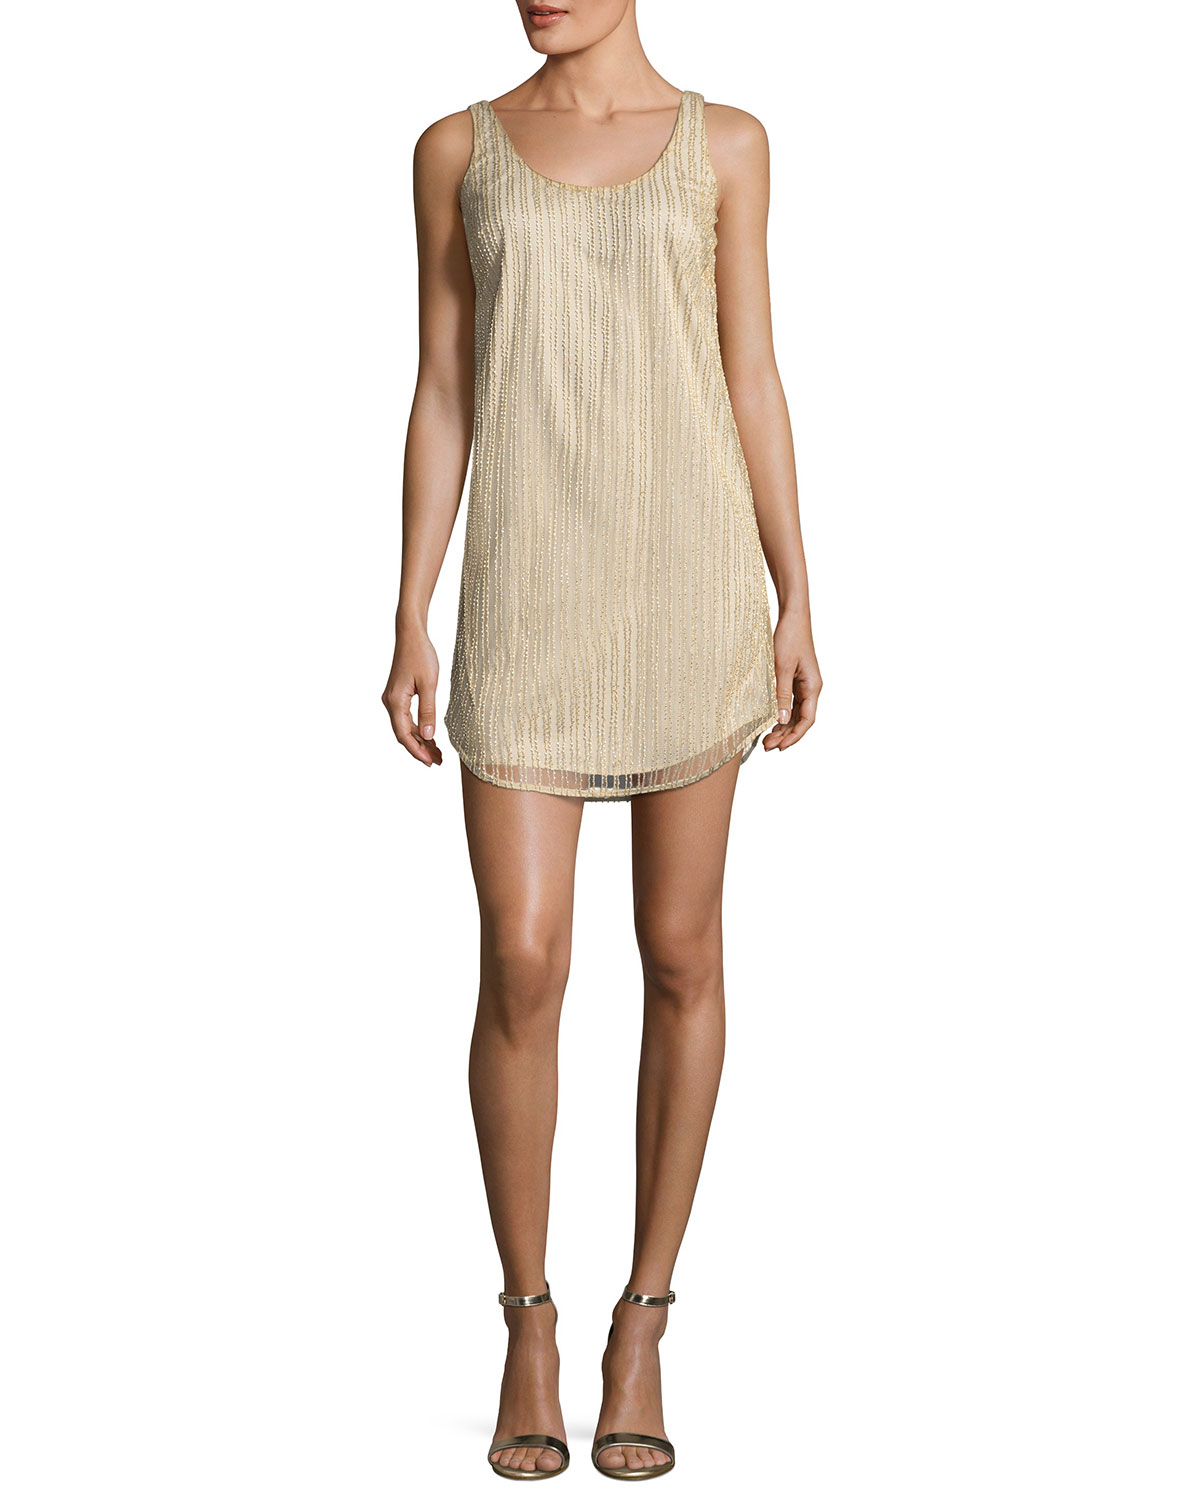 MESTIZA NEW YORK Vertical Beaded Tank Cocktail Dress in Champagne